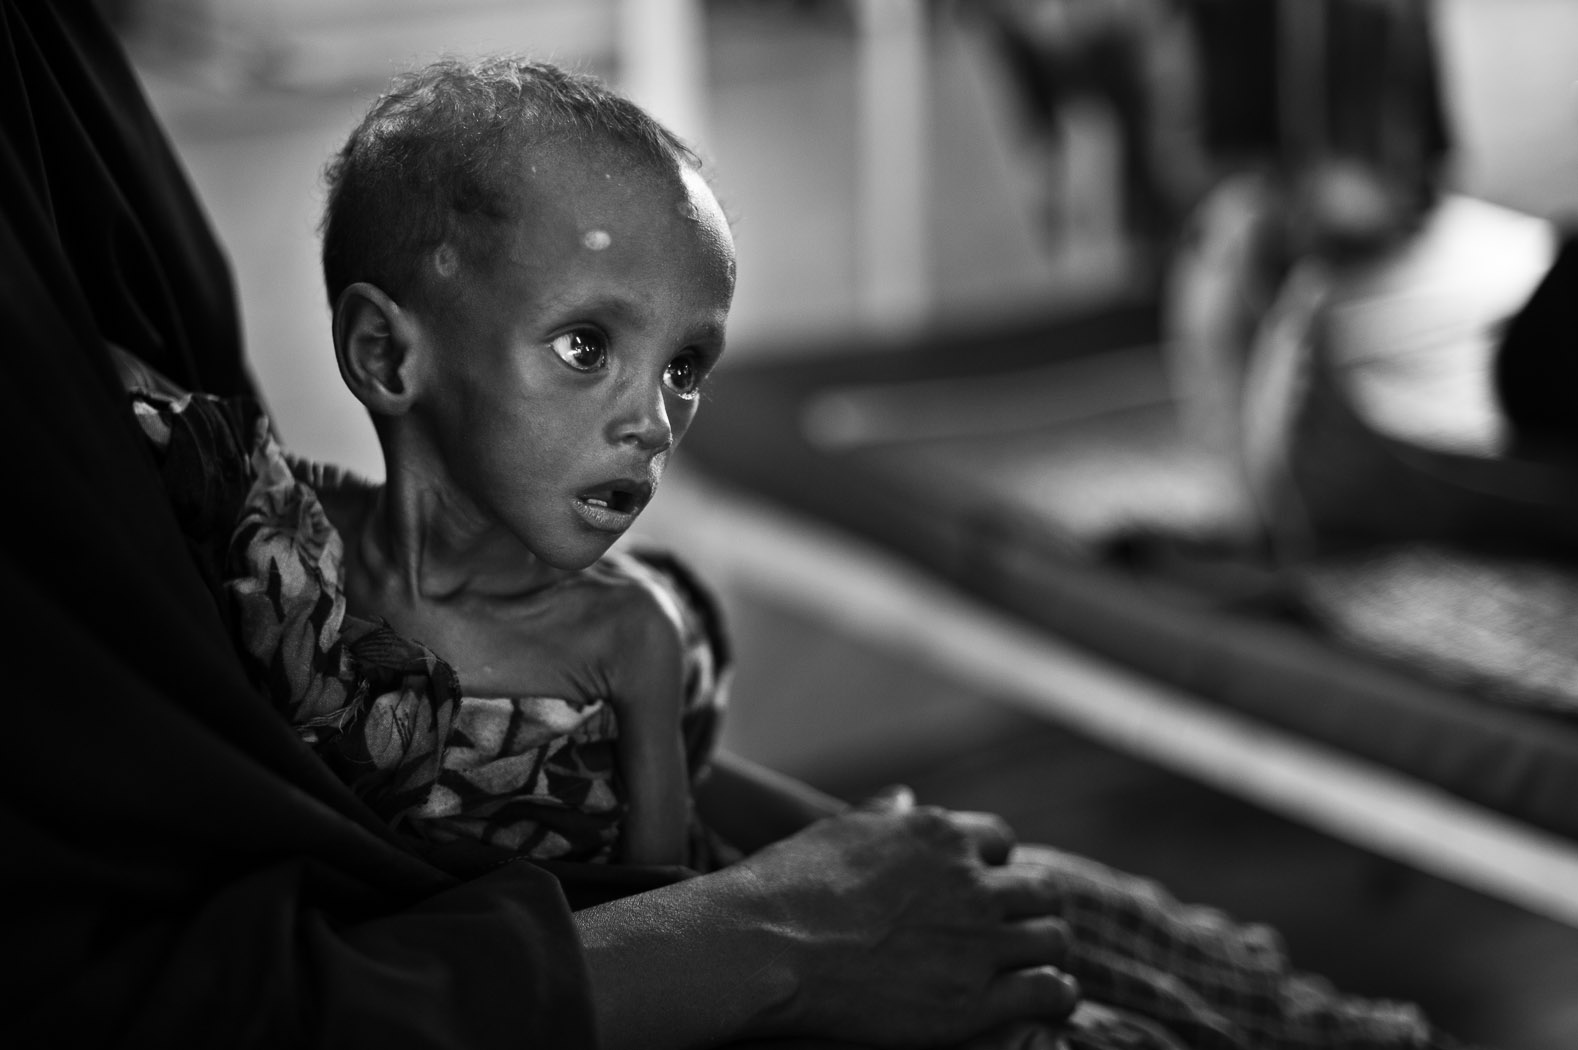 A Somali child suffering from severe acute malnutrition sits in a ward at the Médicins Sans Frontières (MSF) hospital in Dagahaley refugee camp. Estimates for the number of children suffering from malnutrition in the outskirts of Dagahaley are over 40%.